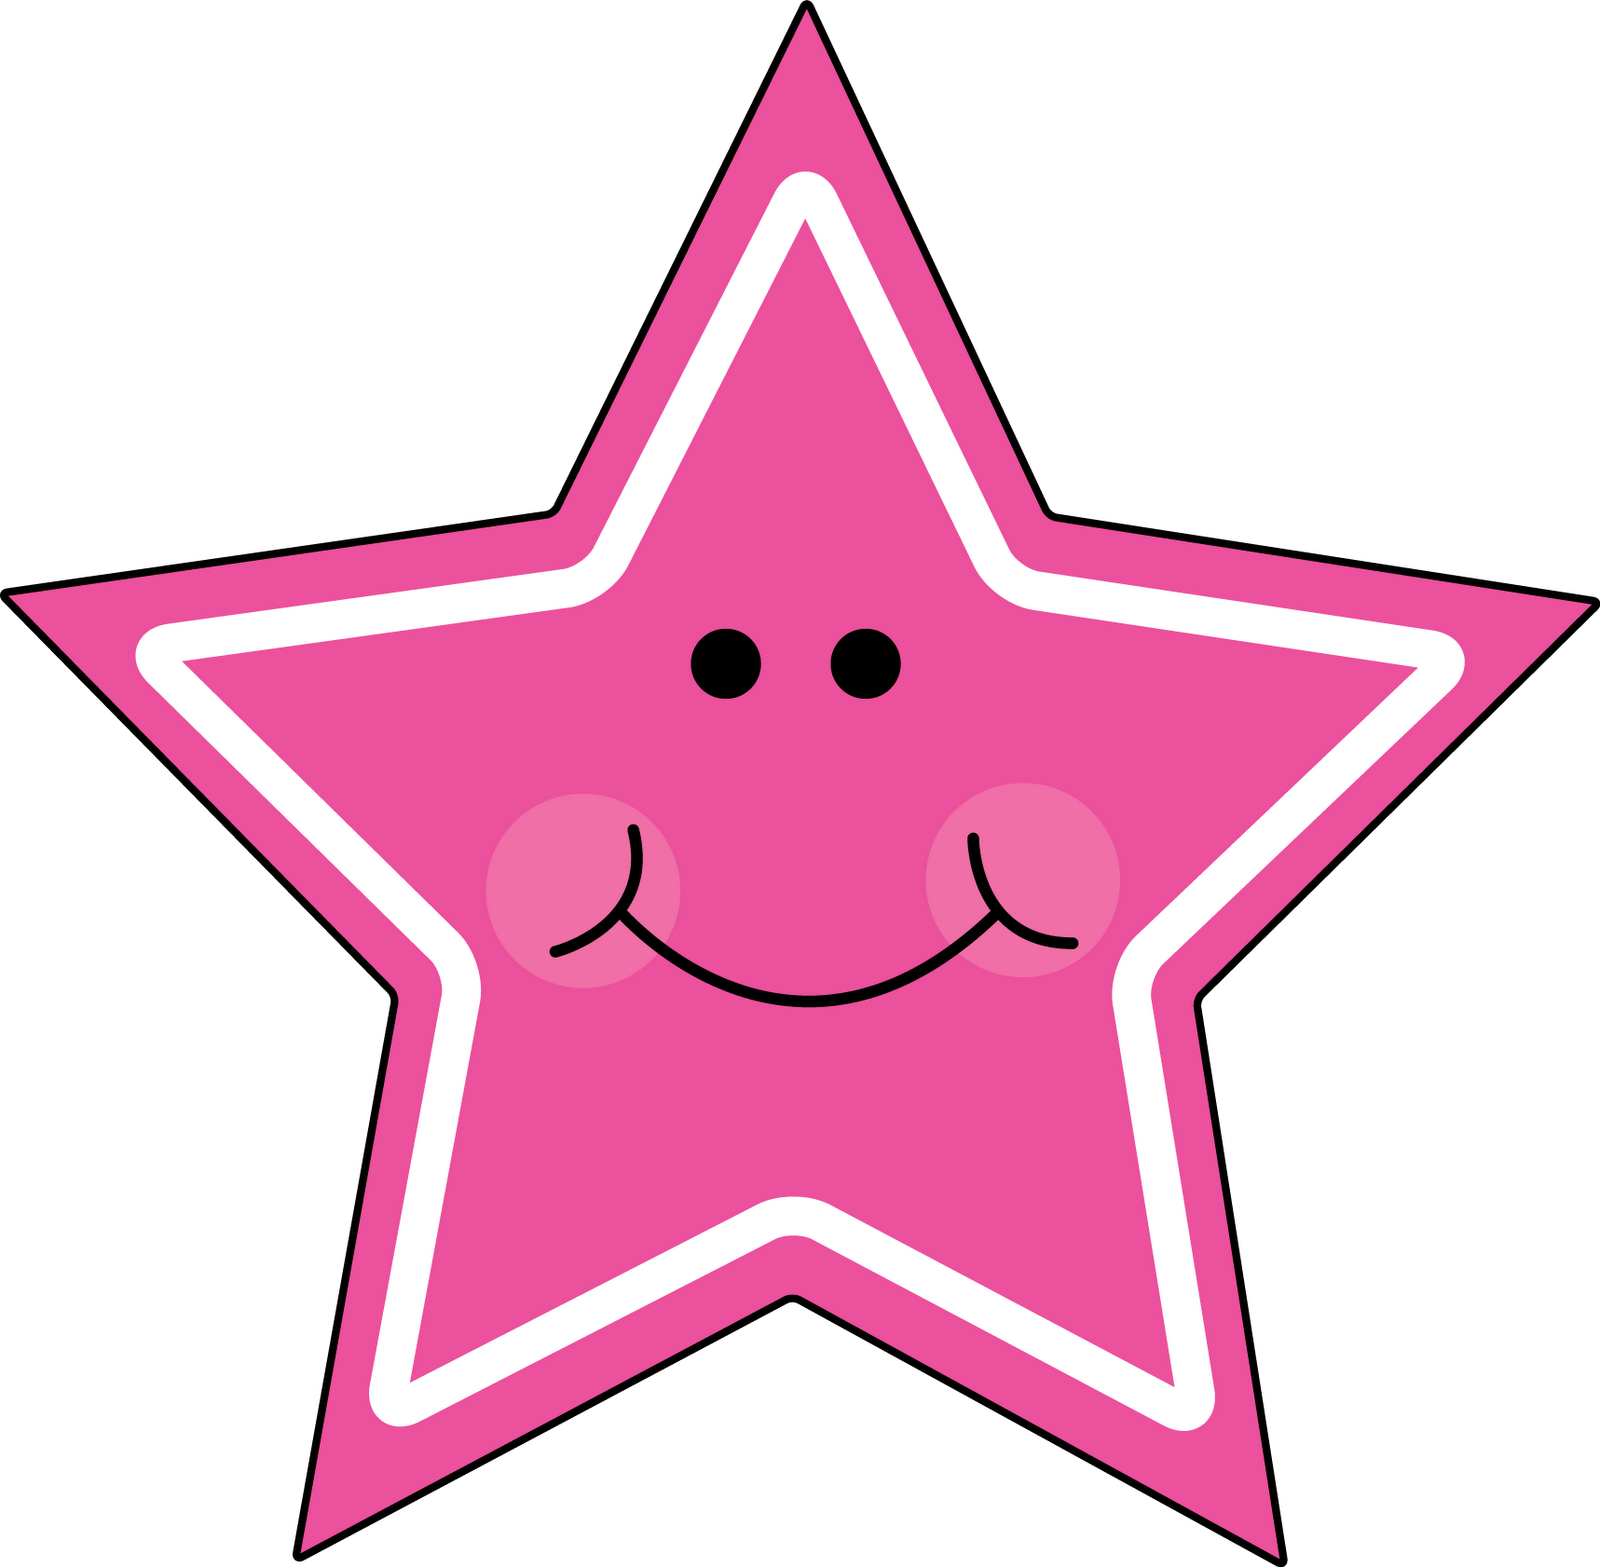 Silly star clipart clipart free library Use the form below to delete this Black And White Diamond Shape Clip ... clipart free library